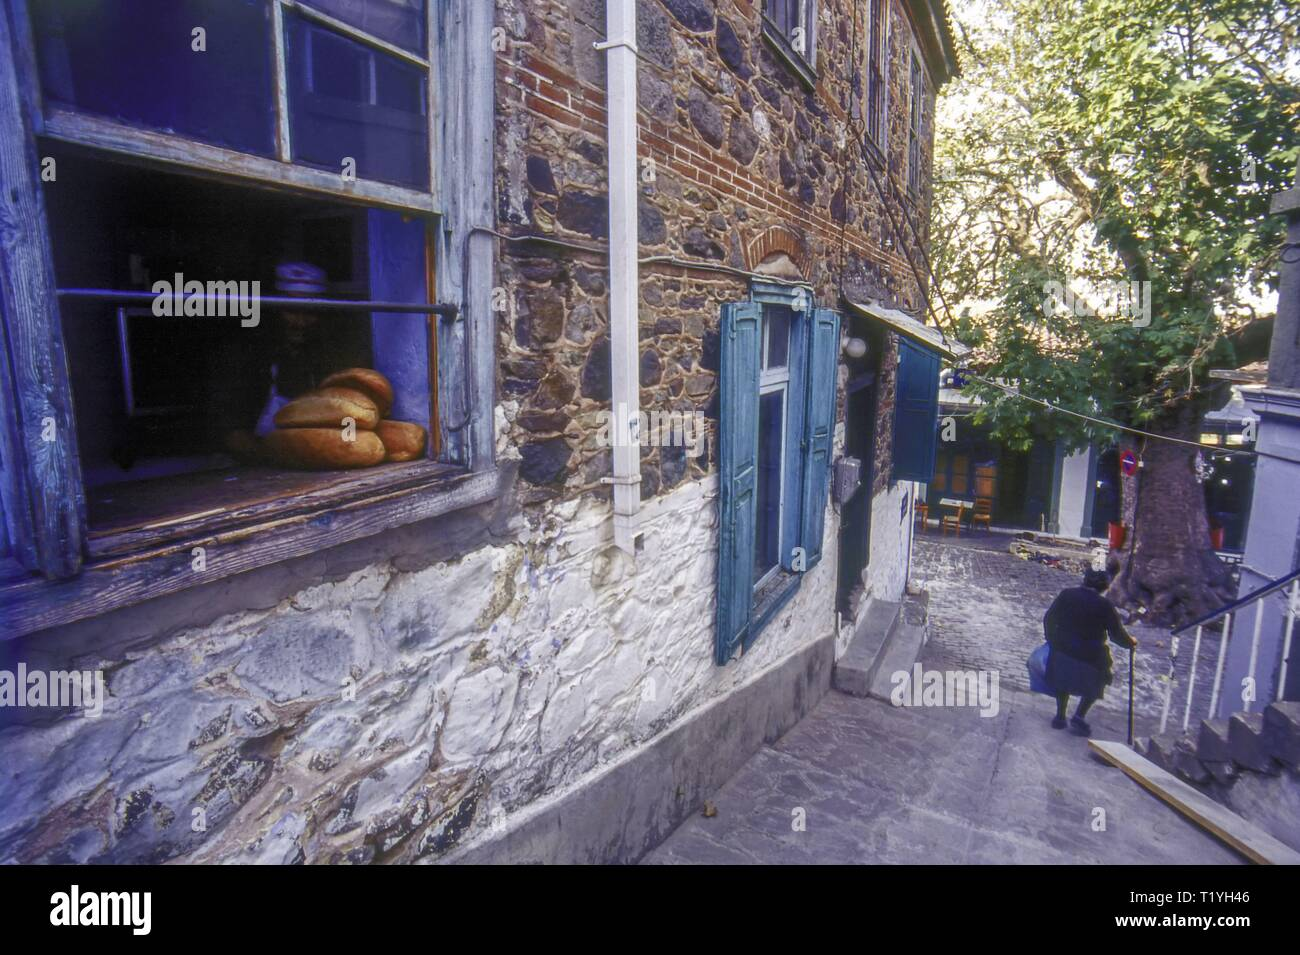 An Old Greek Woman leaving the Bakery in Vatoussa Village, Lesvos, Greece - Stock Image